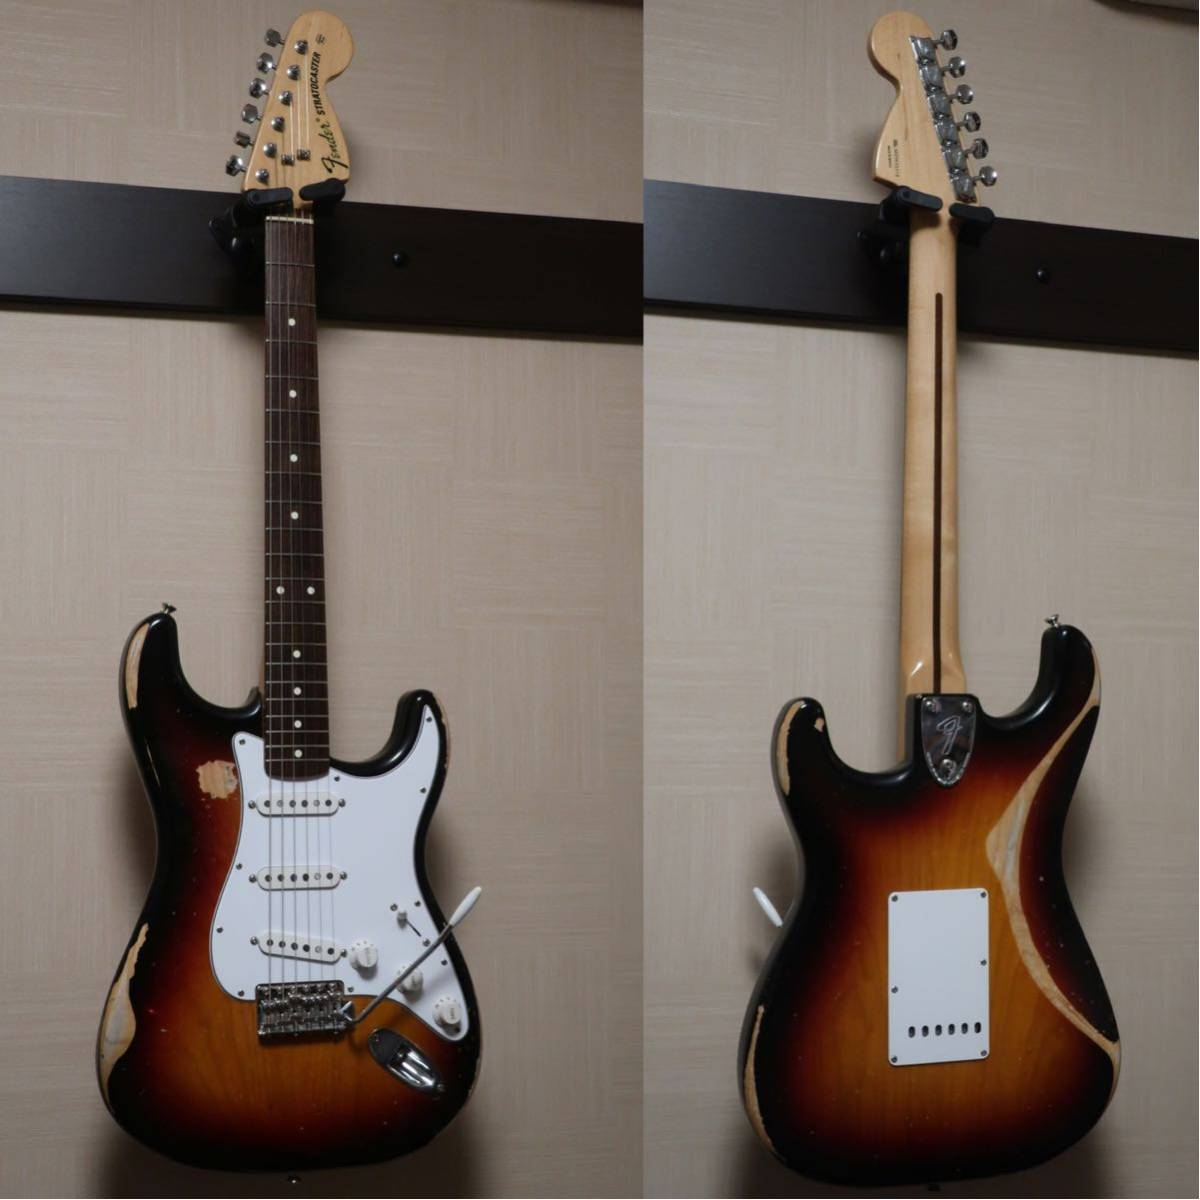 【RELIC】Fender Mexico Classic 70s Stratocaster 3CS/R 手巻きVooDooピックアップ +EMERSON CUSTOM ヴィンテージハードケース付き_画像3